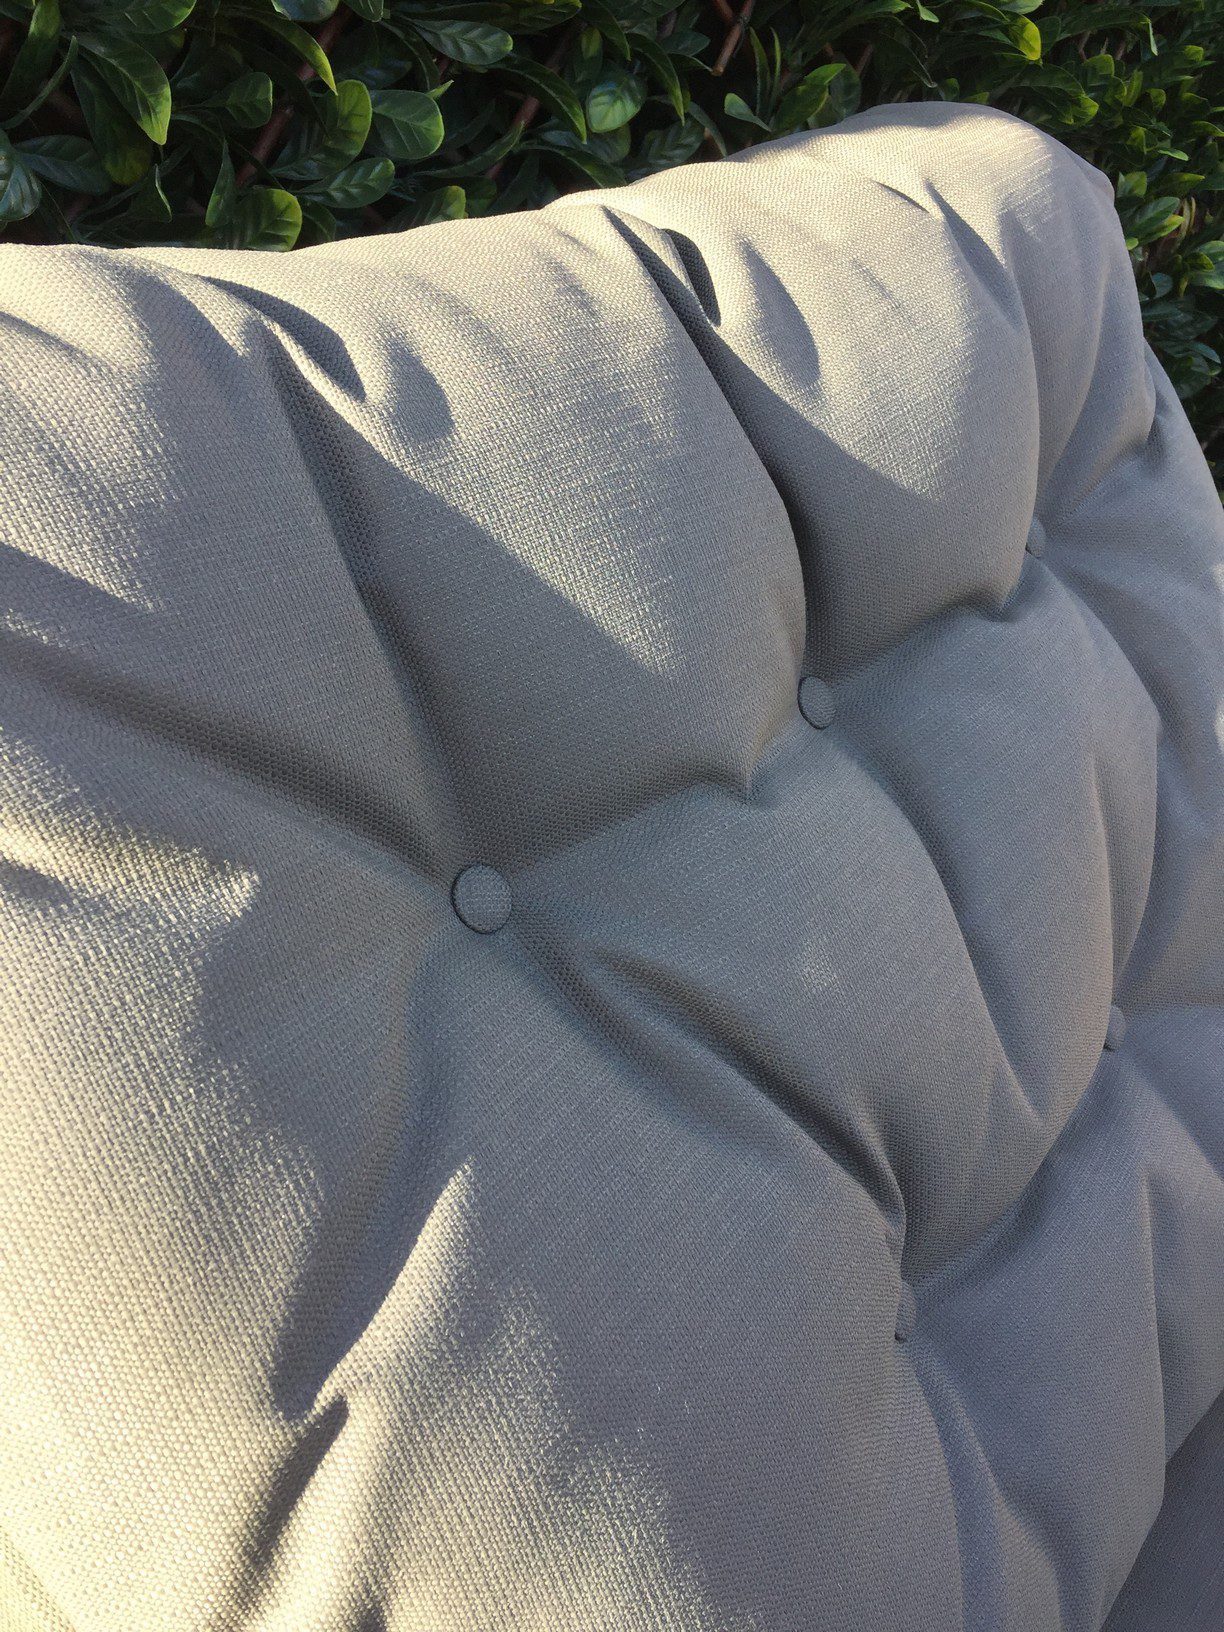 4 Seasons Outdoor Valentine Love Seat With Footrest 9